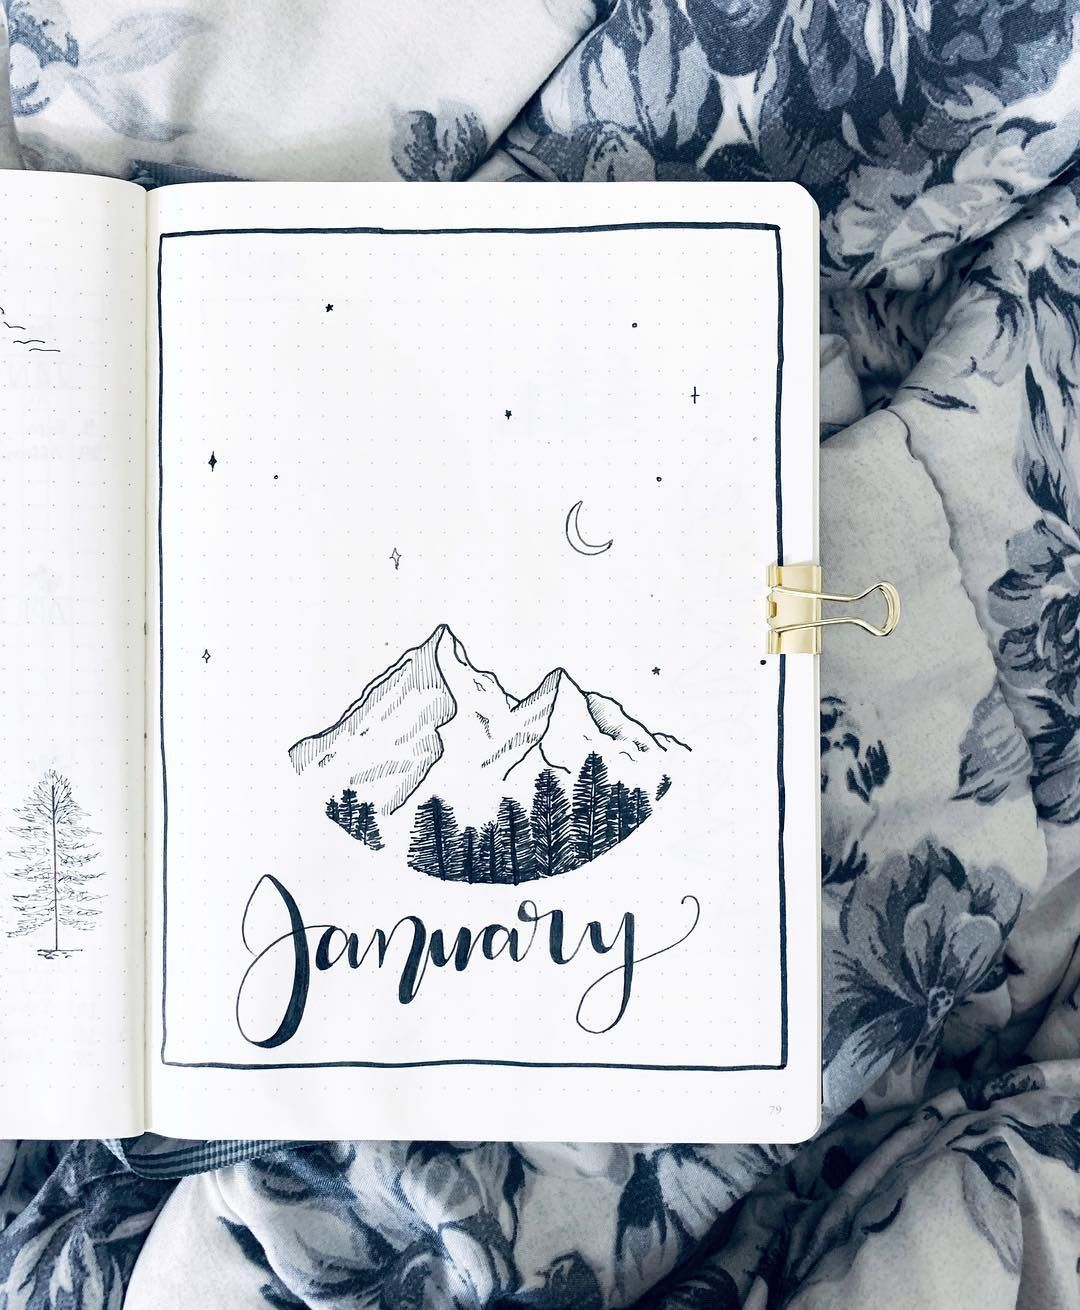 15 Lovely January Cover Ideas For Your Bullet Journal - Craftsonfire - These Jan...